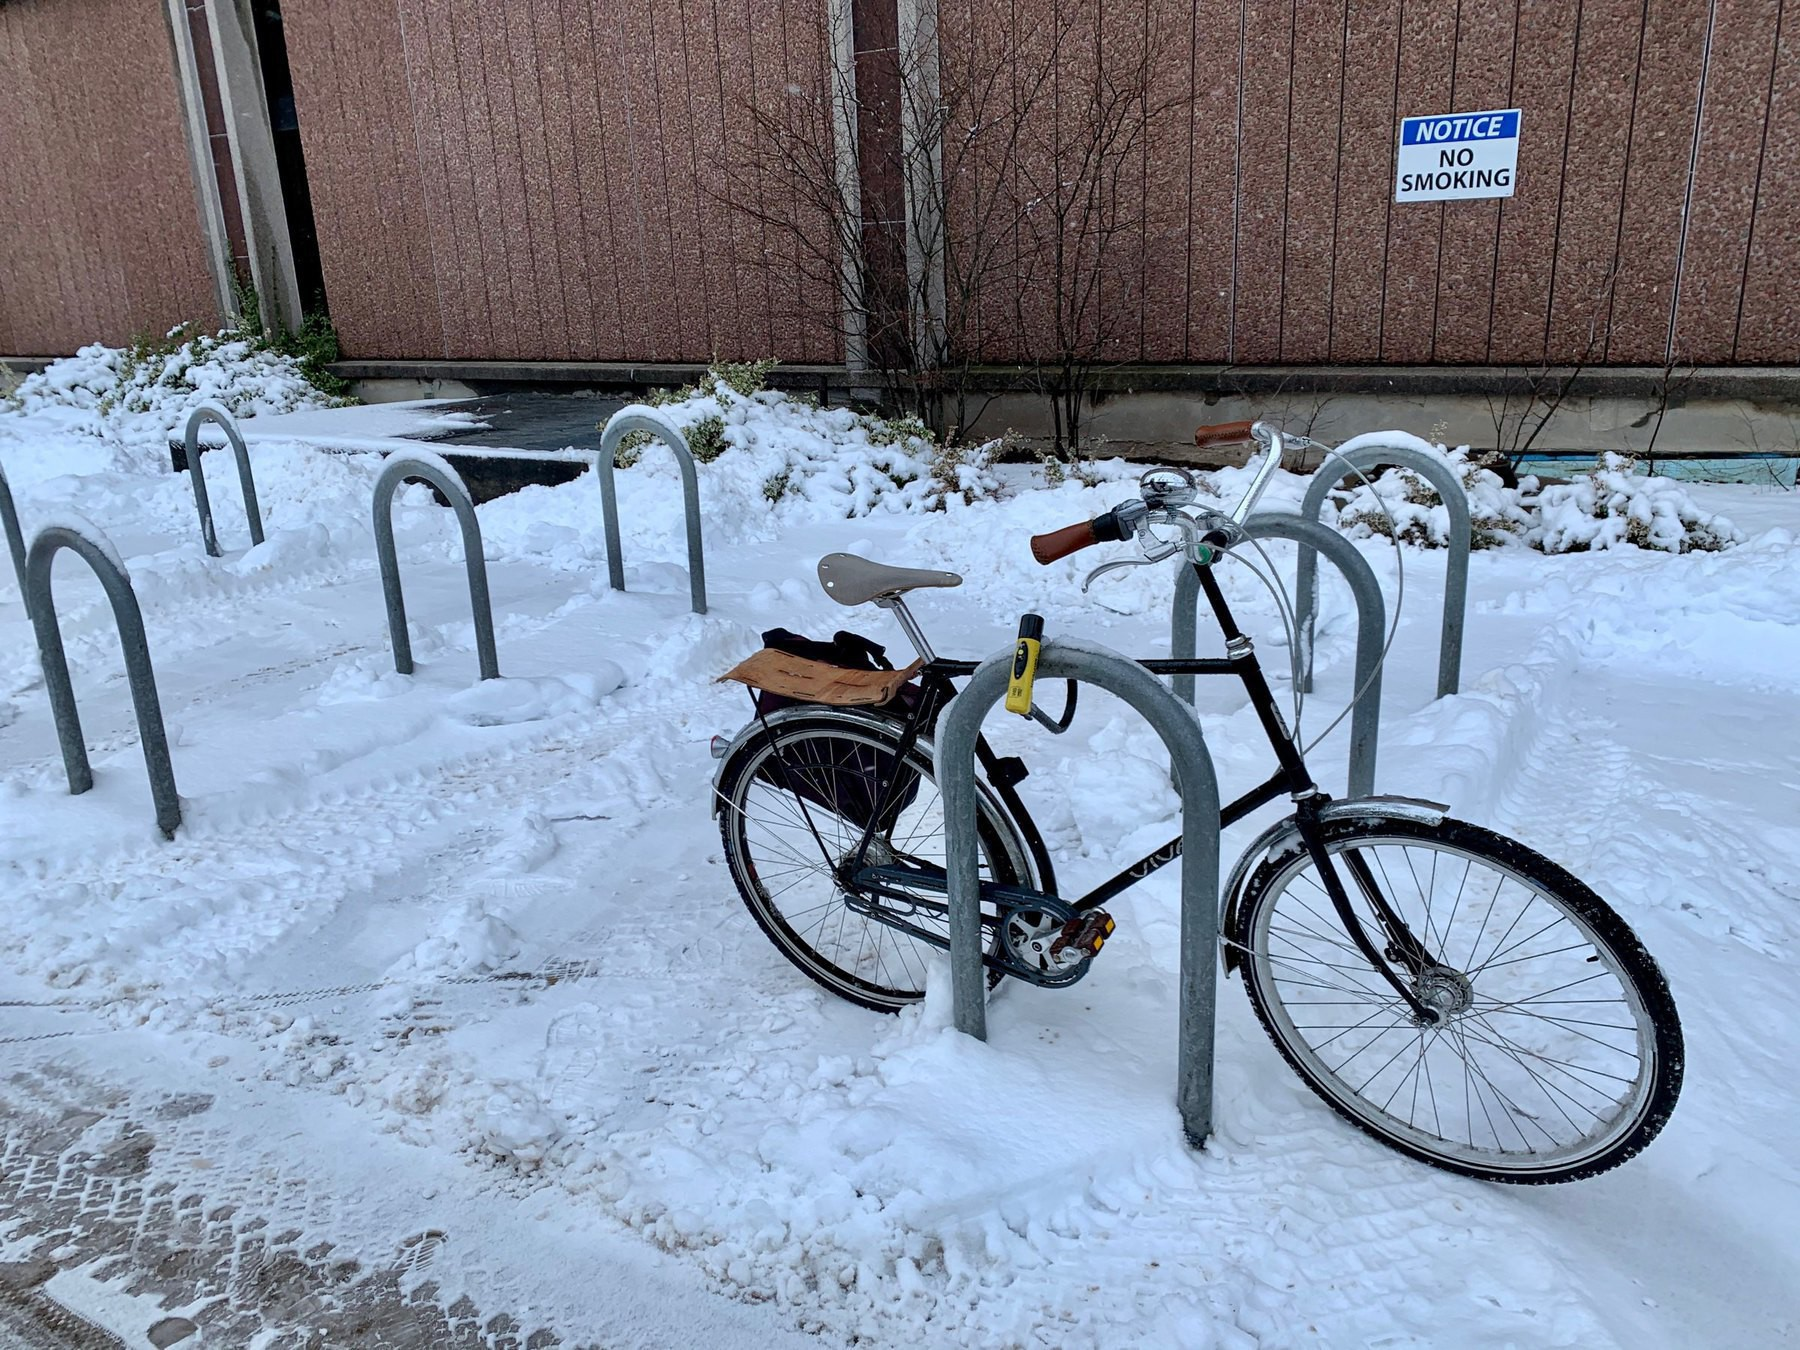 A bicycle parked at a set of bicycle racks that have snow plowed from inbetween them